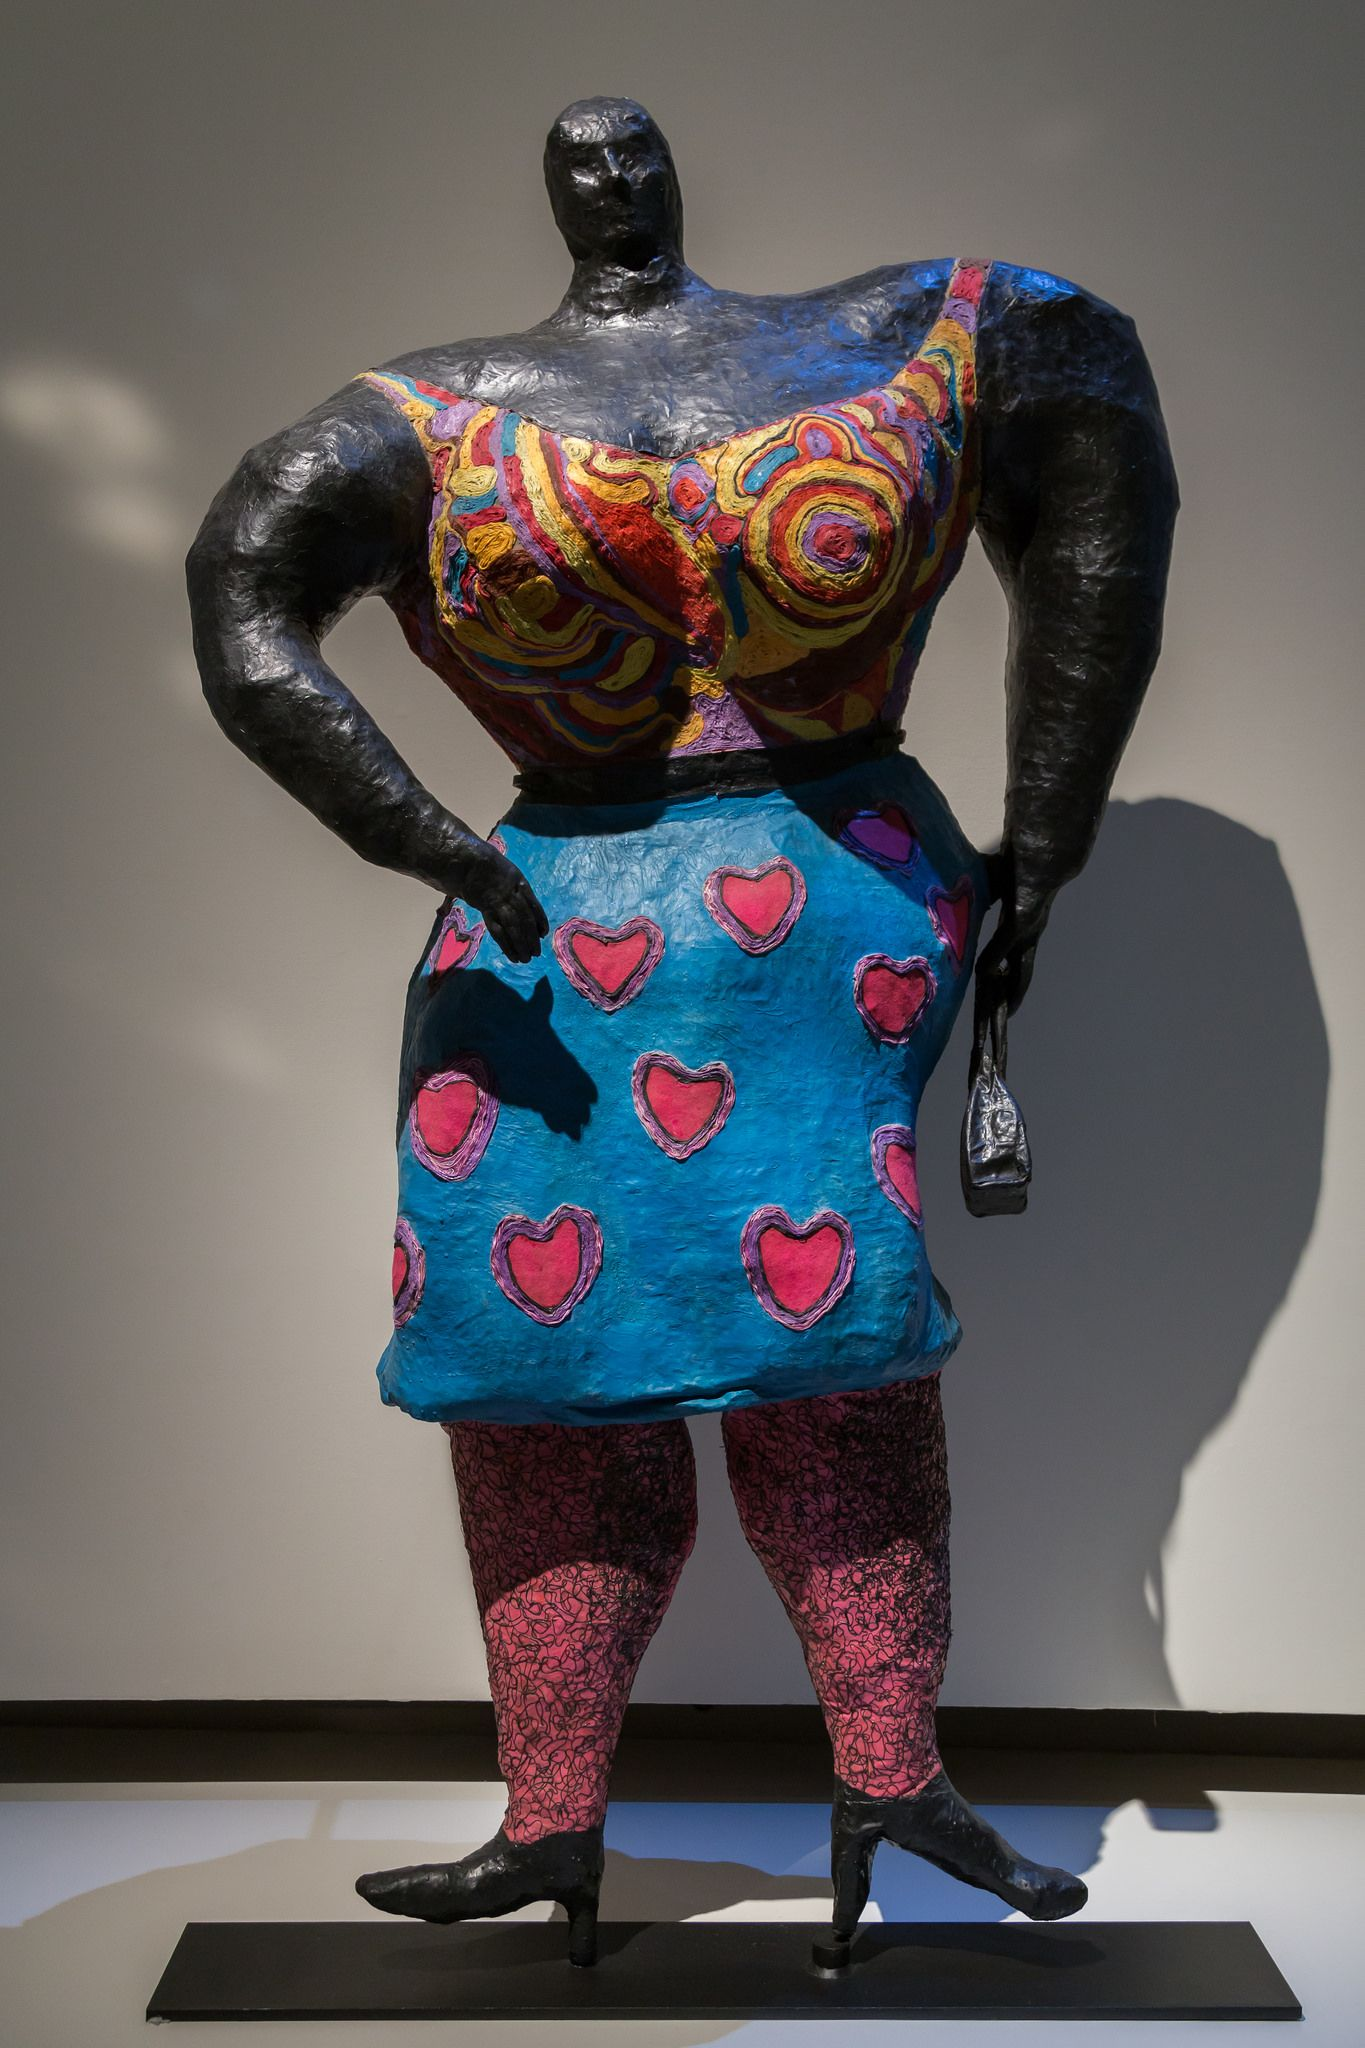 2014/10/10 18h04 Niki de Saint Phalle, «Black Rosy ou My Heart Belongs To Rosy» (1965) | Exposition Niki de Saint Phalle, Grand Palais (Paris)